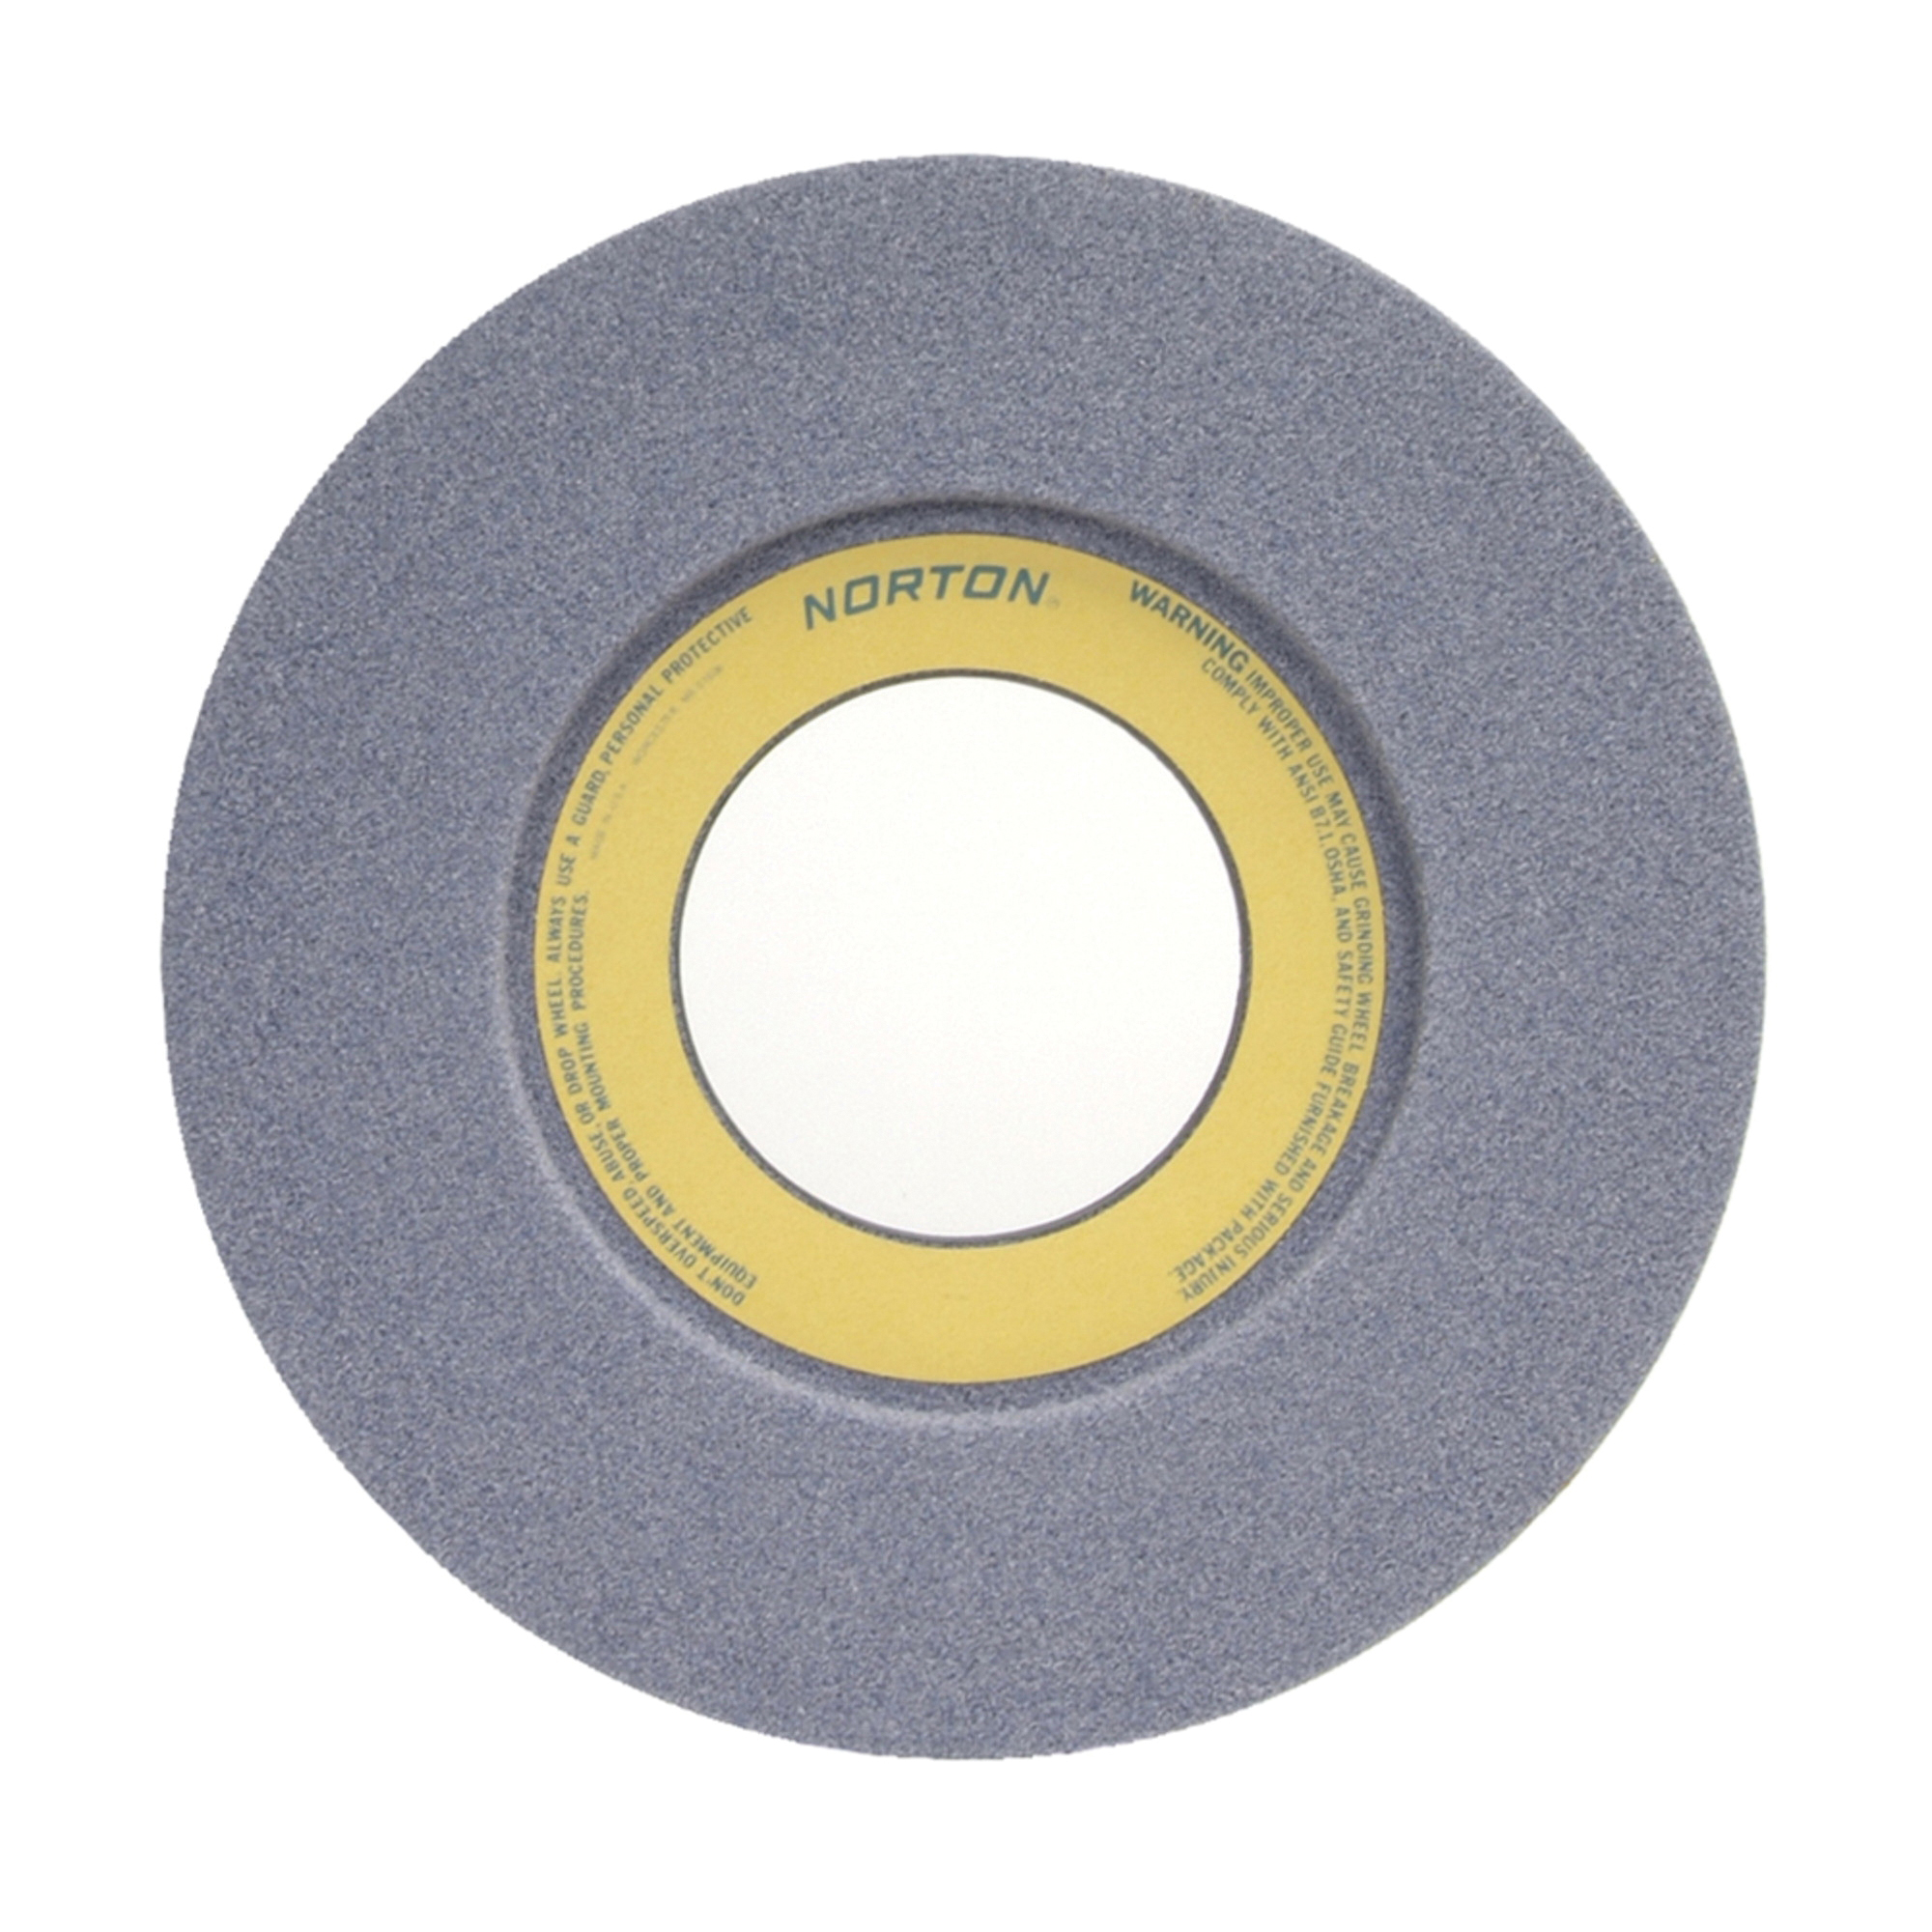 Norton® 66253364364 32A 1-Side Recessed Toolroom Wheel, 14 in Dia x 1-1/2 in THK, 5 in Center Hole, 60 Grit, Aluminum Oxide Abrasive